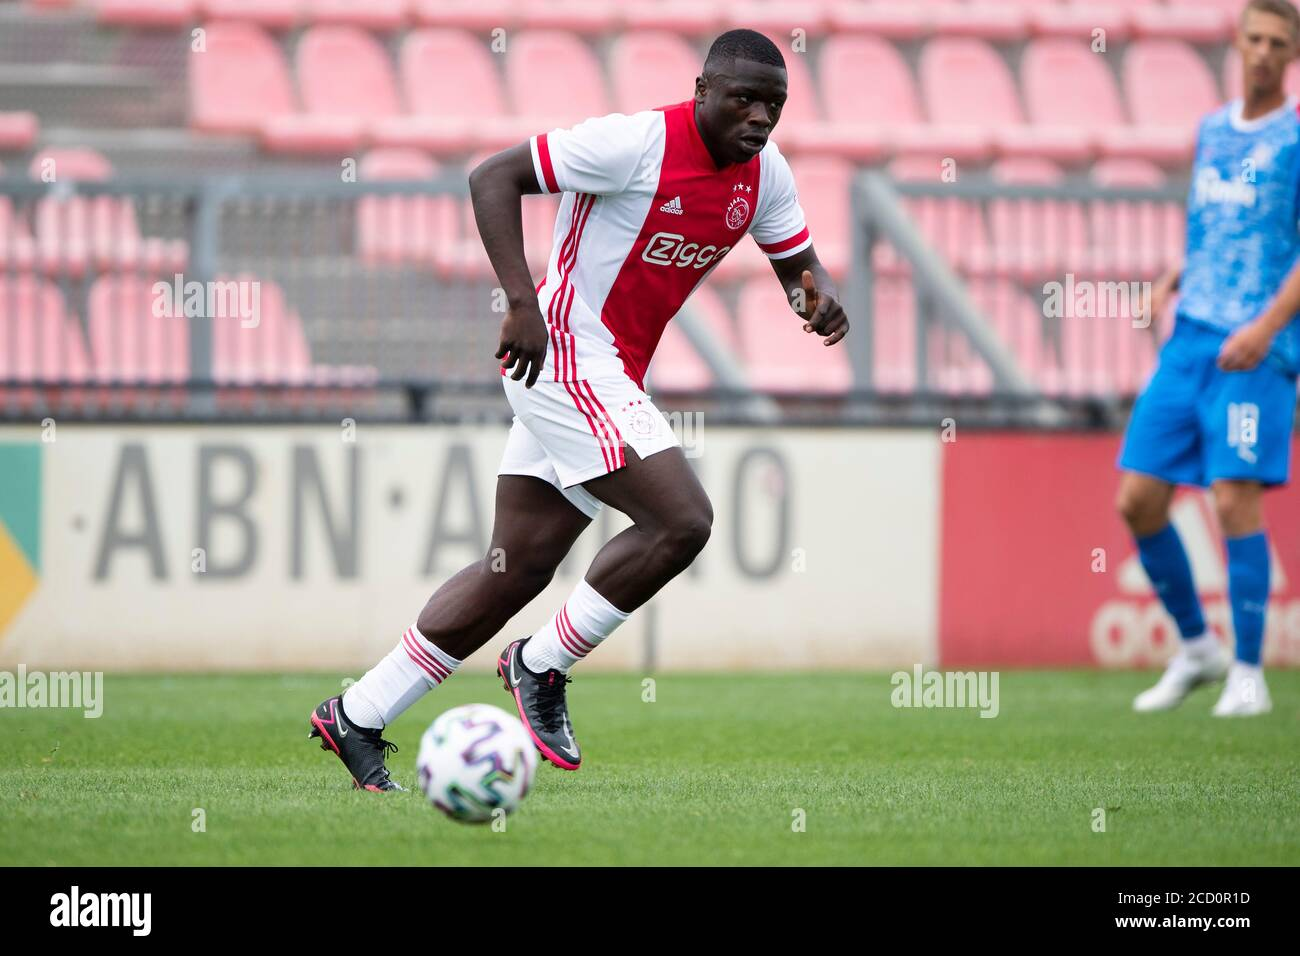 Amsterdam 25 08 2020 Sportpark De Toekomst Football Friendly Testmatch Season 2020 2021 Ajax Holstein Kiel Ajax Player Brian Brobbey Stock Photo Alamy